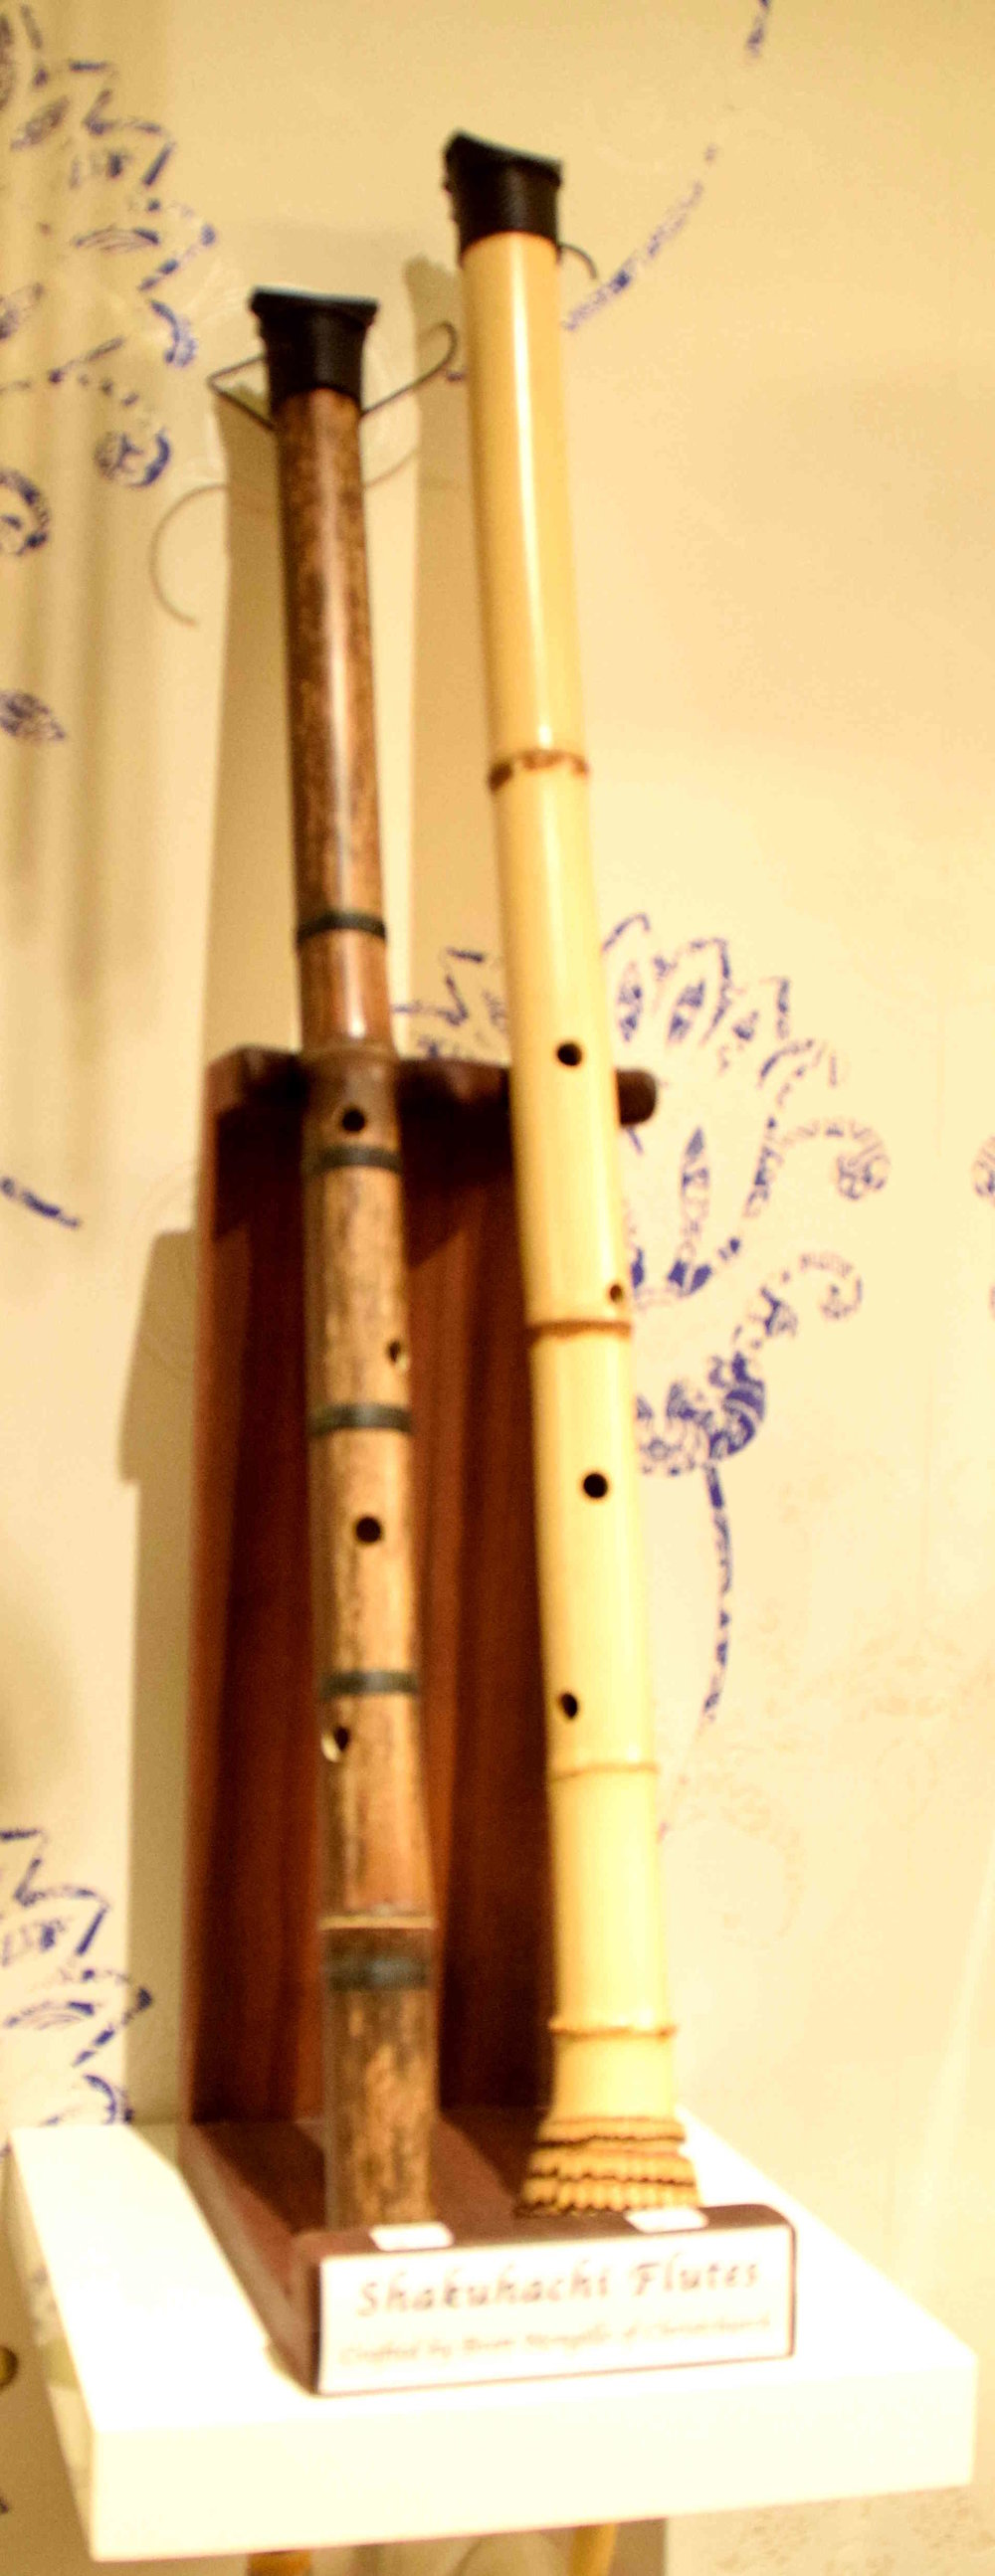 Shakuhachi flutes from Japan, traditionally made of bamboo and used by the monks of the Fuke Zen branch of Zen Buddhism for many centuries